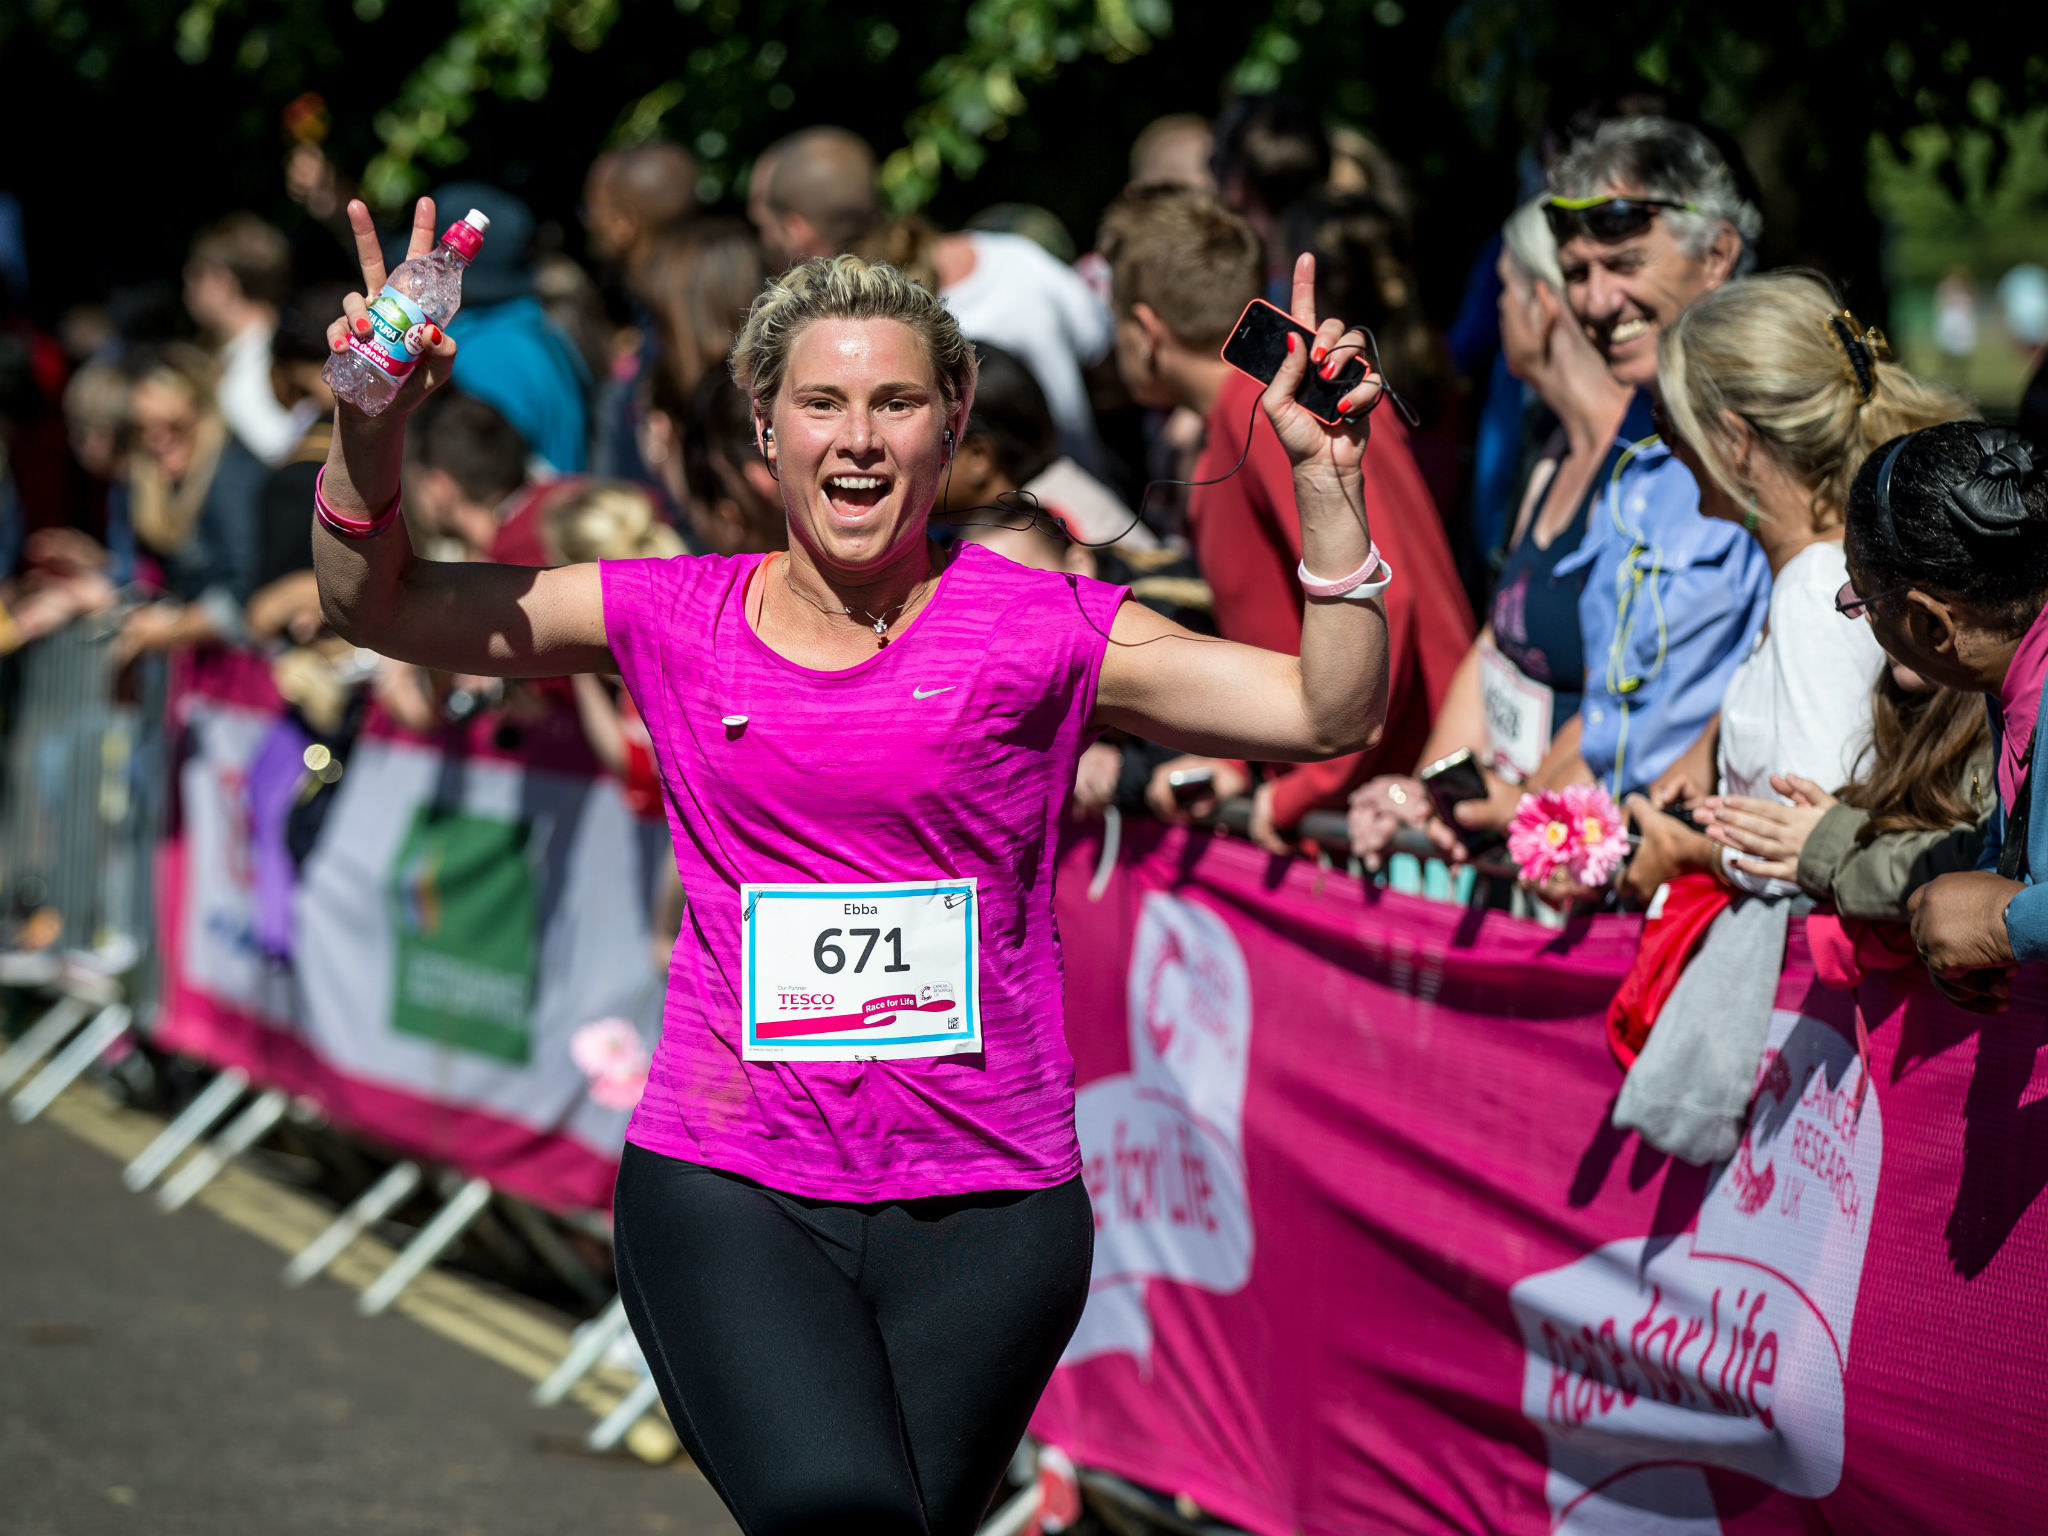 Are you ready for the Race for Life 10k?